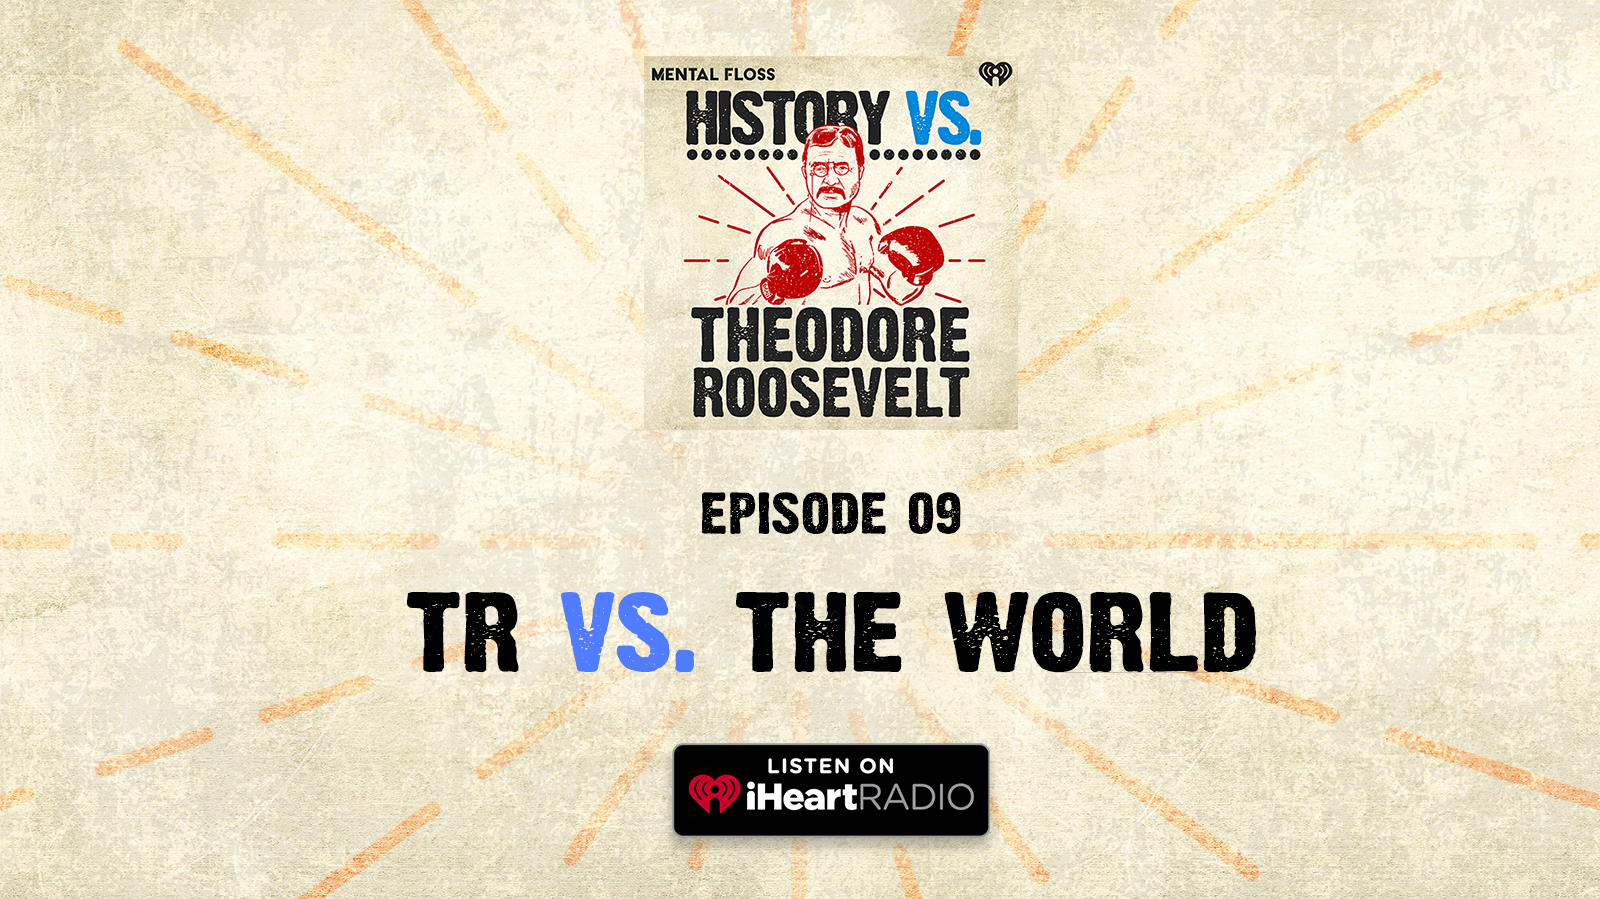 History Vs. Episode 9: Theodore Roosevelt Vs. The World